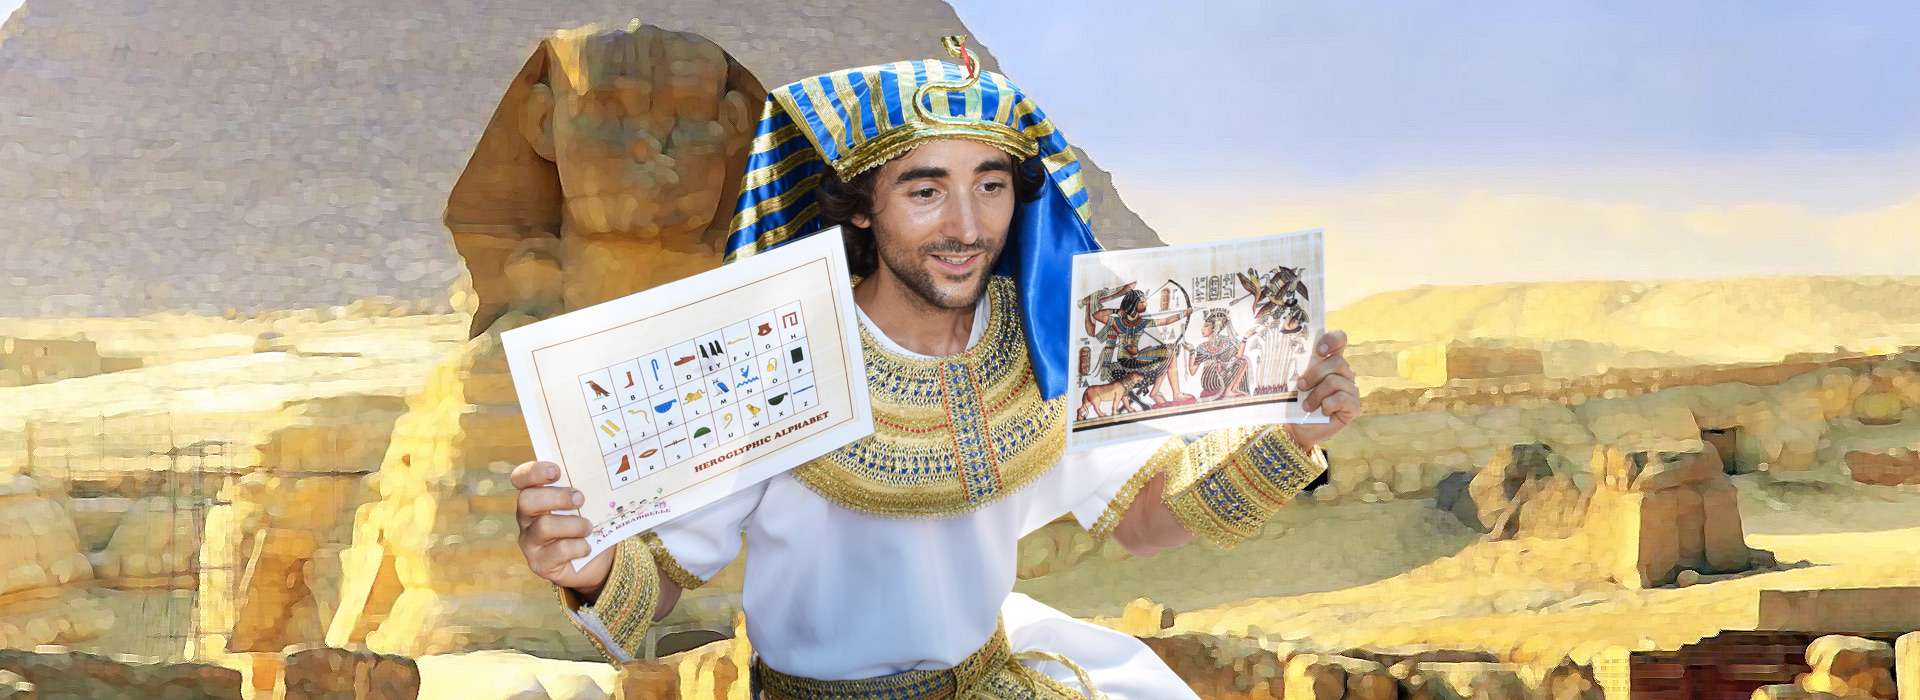 Slider d'images de l'animation Pharaon Prince d'Egypte